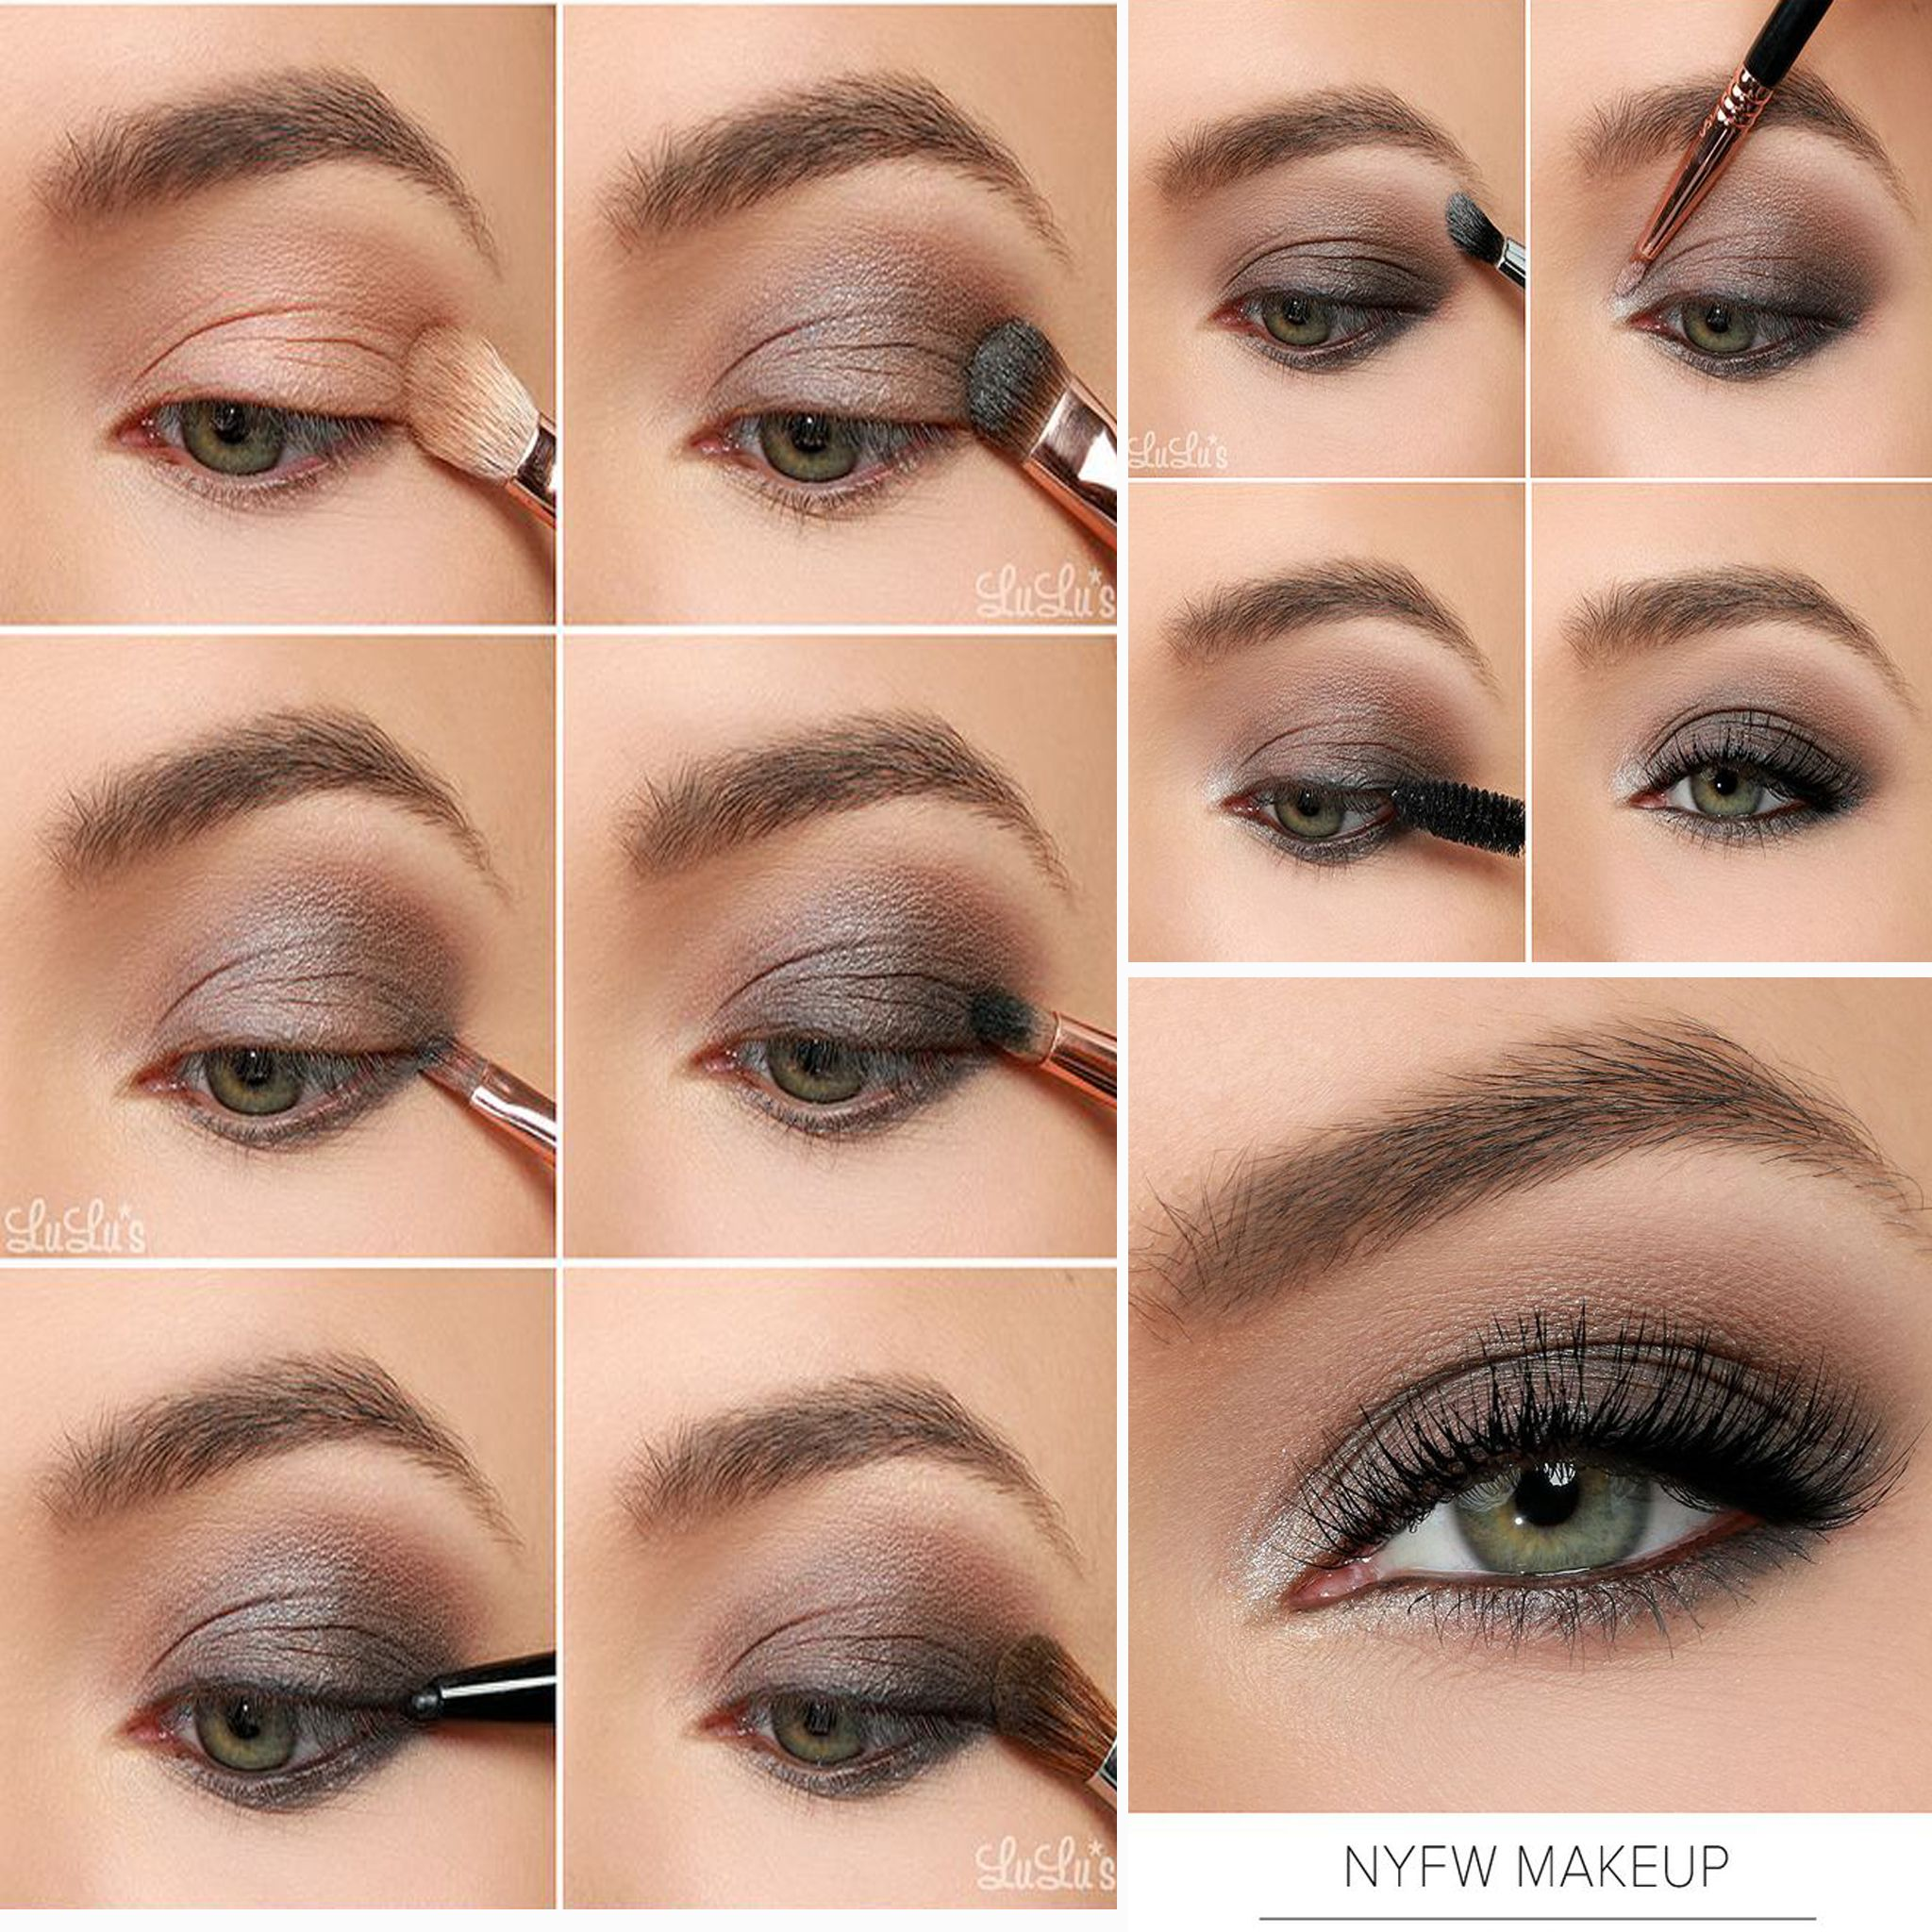 5 step by step smokey eye makeup tutorials for beginners